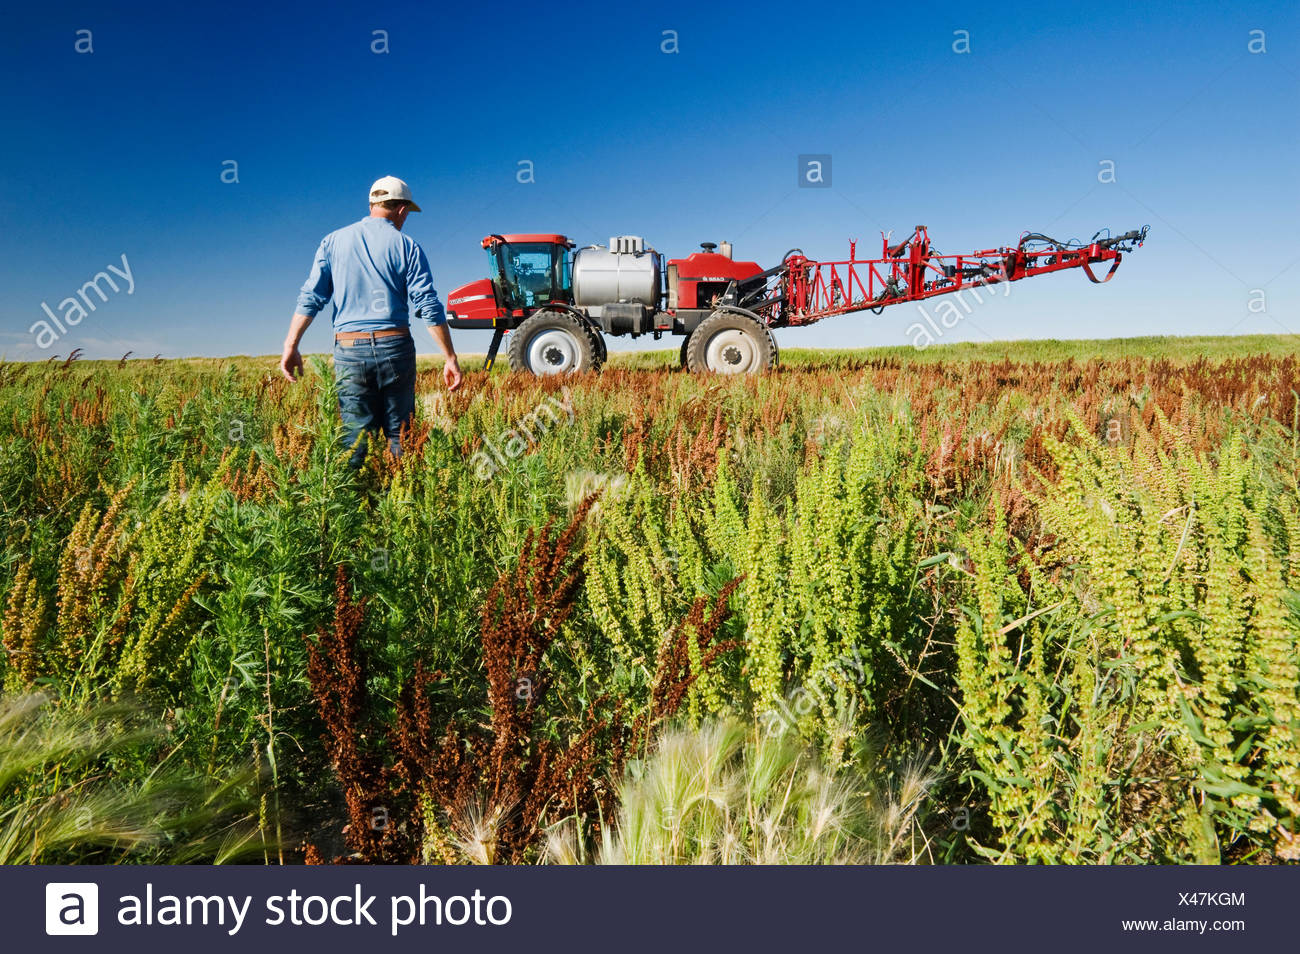 a man scouts weeds in field next to a high clearance sprayer, near Moreland, Saskatchewan, Canada - Stock Image